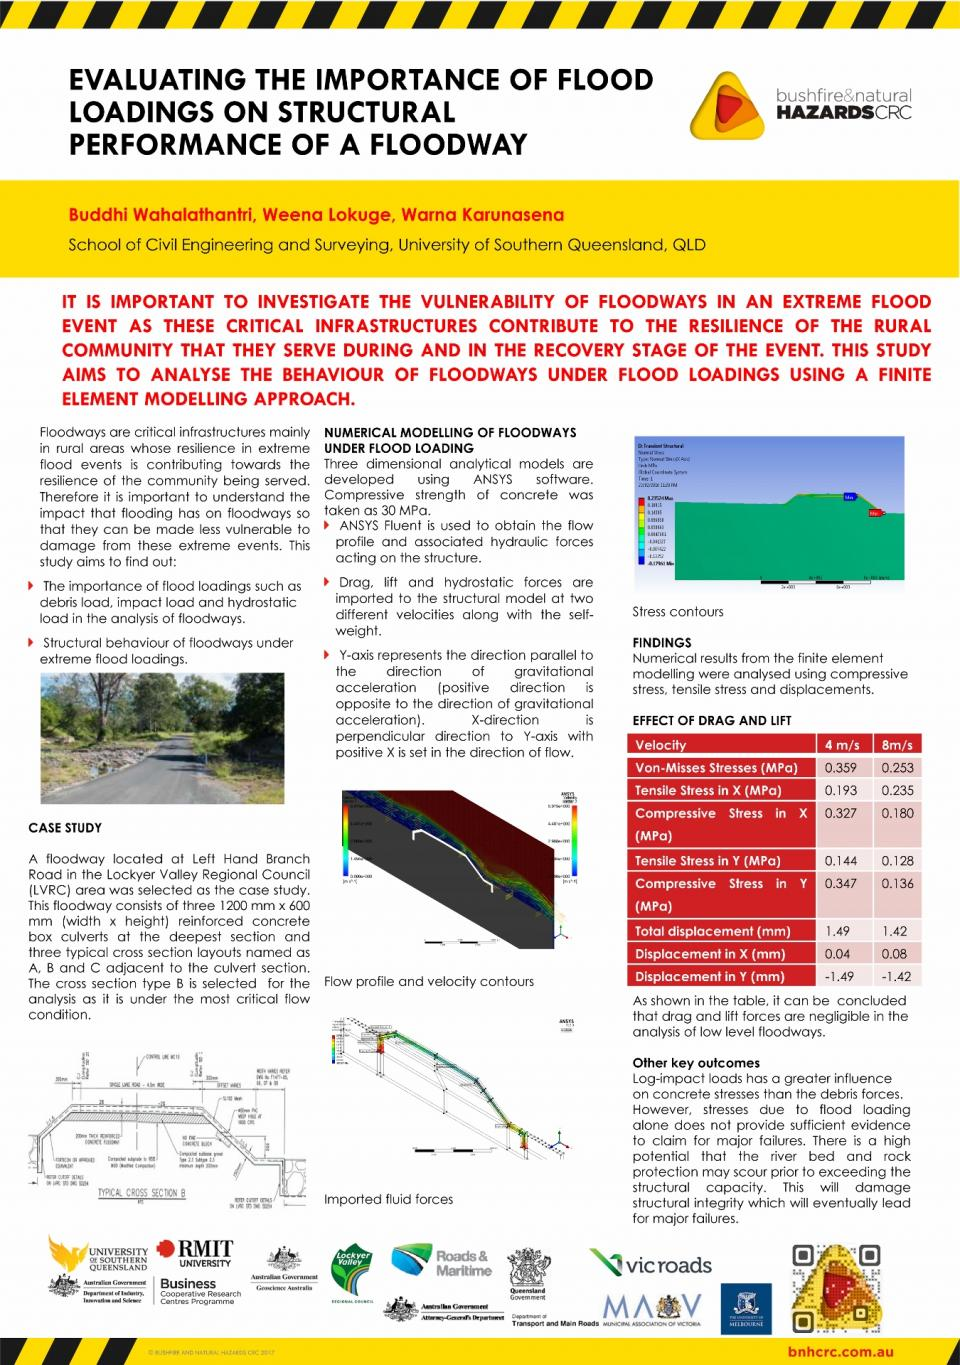 Evaluating the performance of flood loadings on structural performance of a floodway